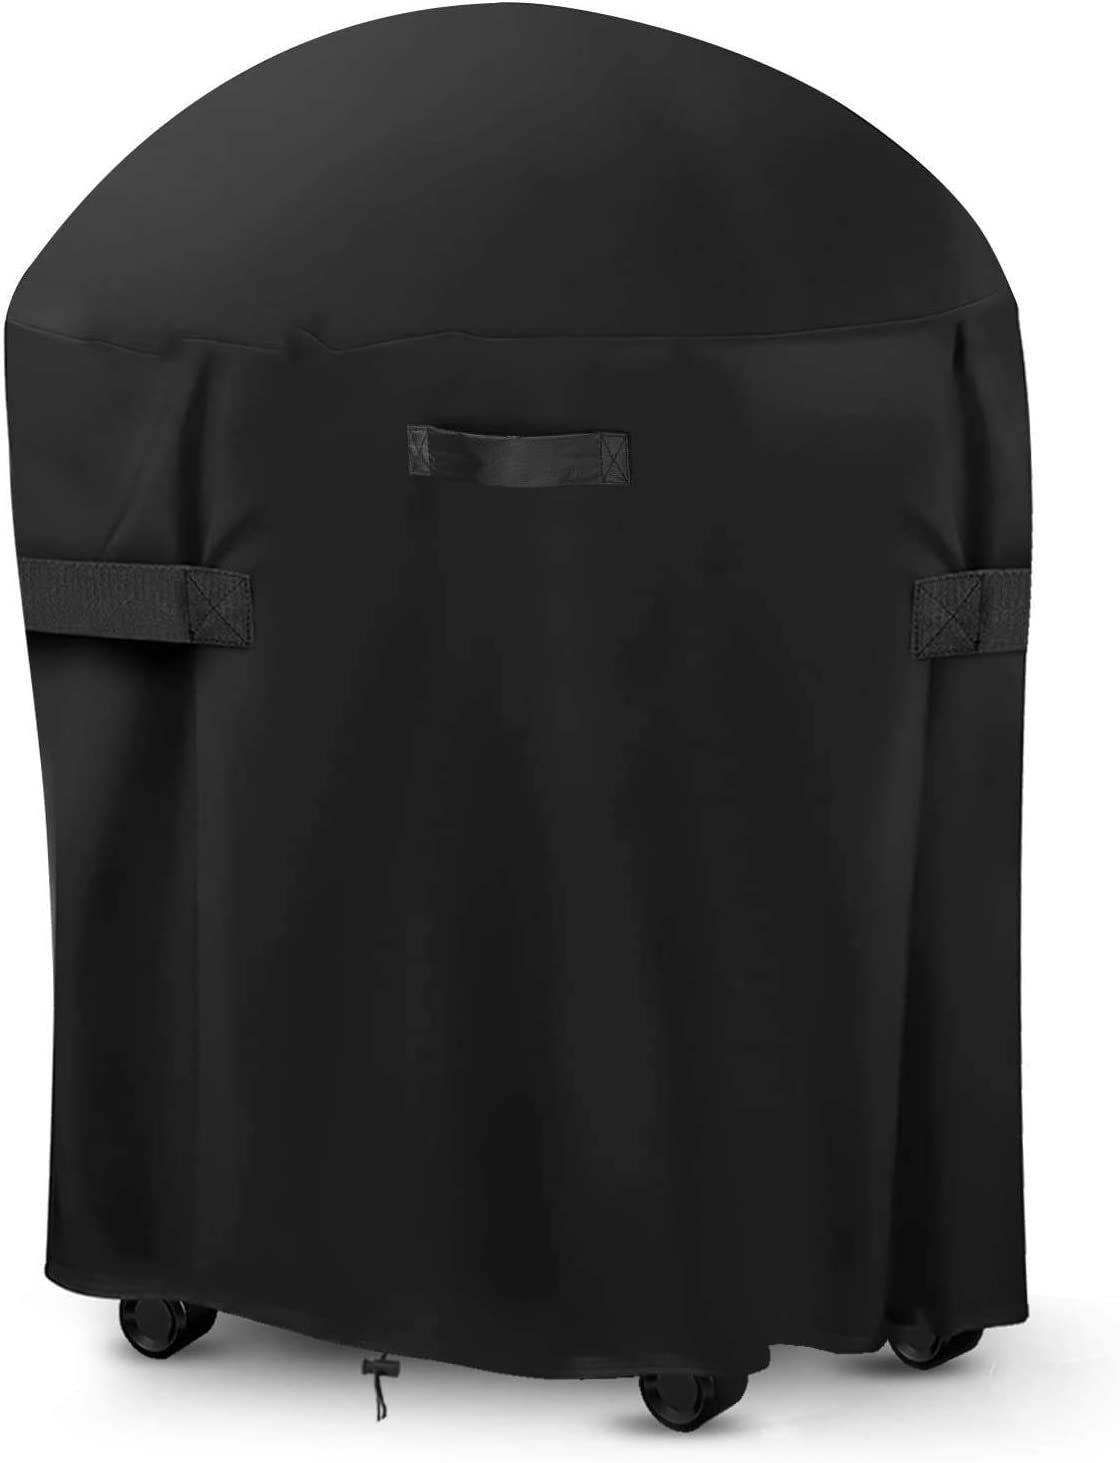 LEMI 30-inch Round Smoker Cover, BBQ Grill Cover Kamado Cover Barrel Cover Fit for Smoker Grills Charcoal Grills Kamado Grills Gas Grills Vertical Fire Pit Barrel, UV Dust Water Resistant, Black